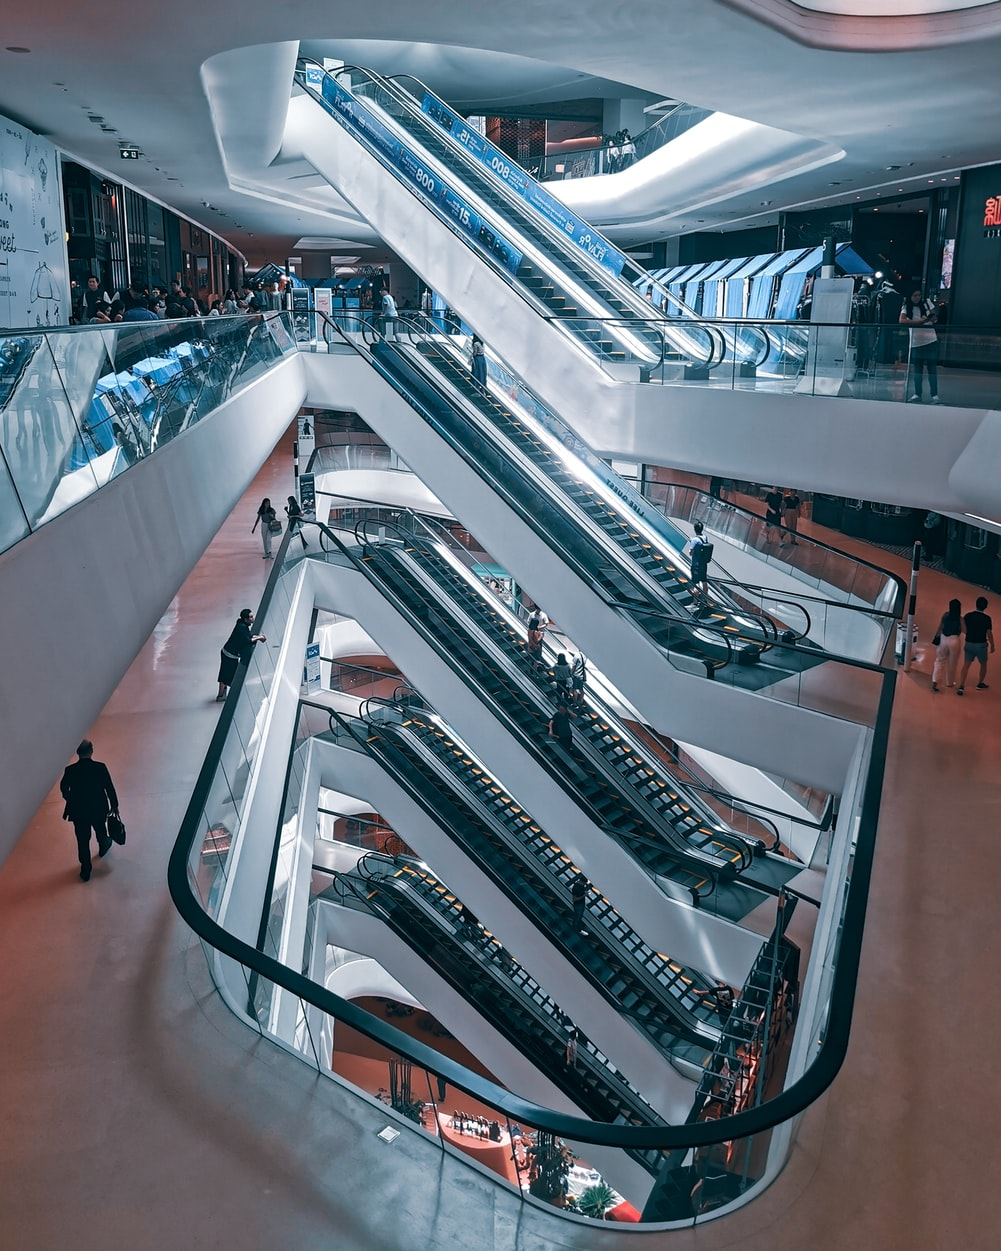 Levels of escalators in a high-end shopping mall